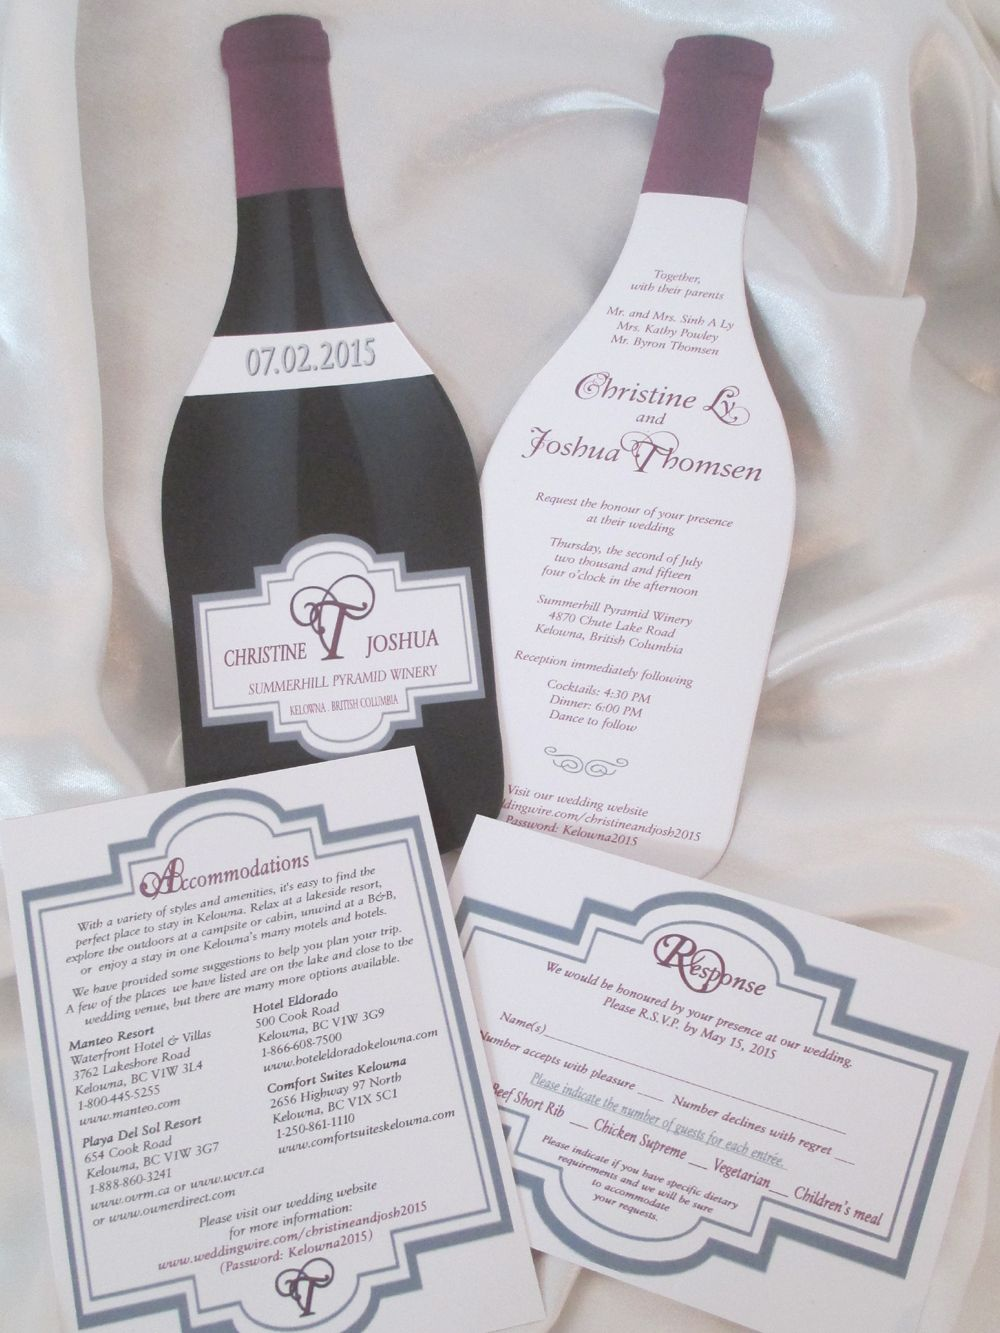 wine-bottle-shape-wedding-invite-response-accommodations | Wedding ...